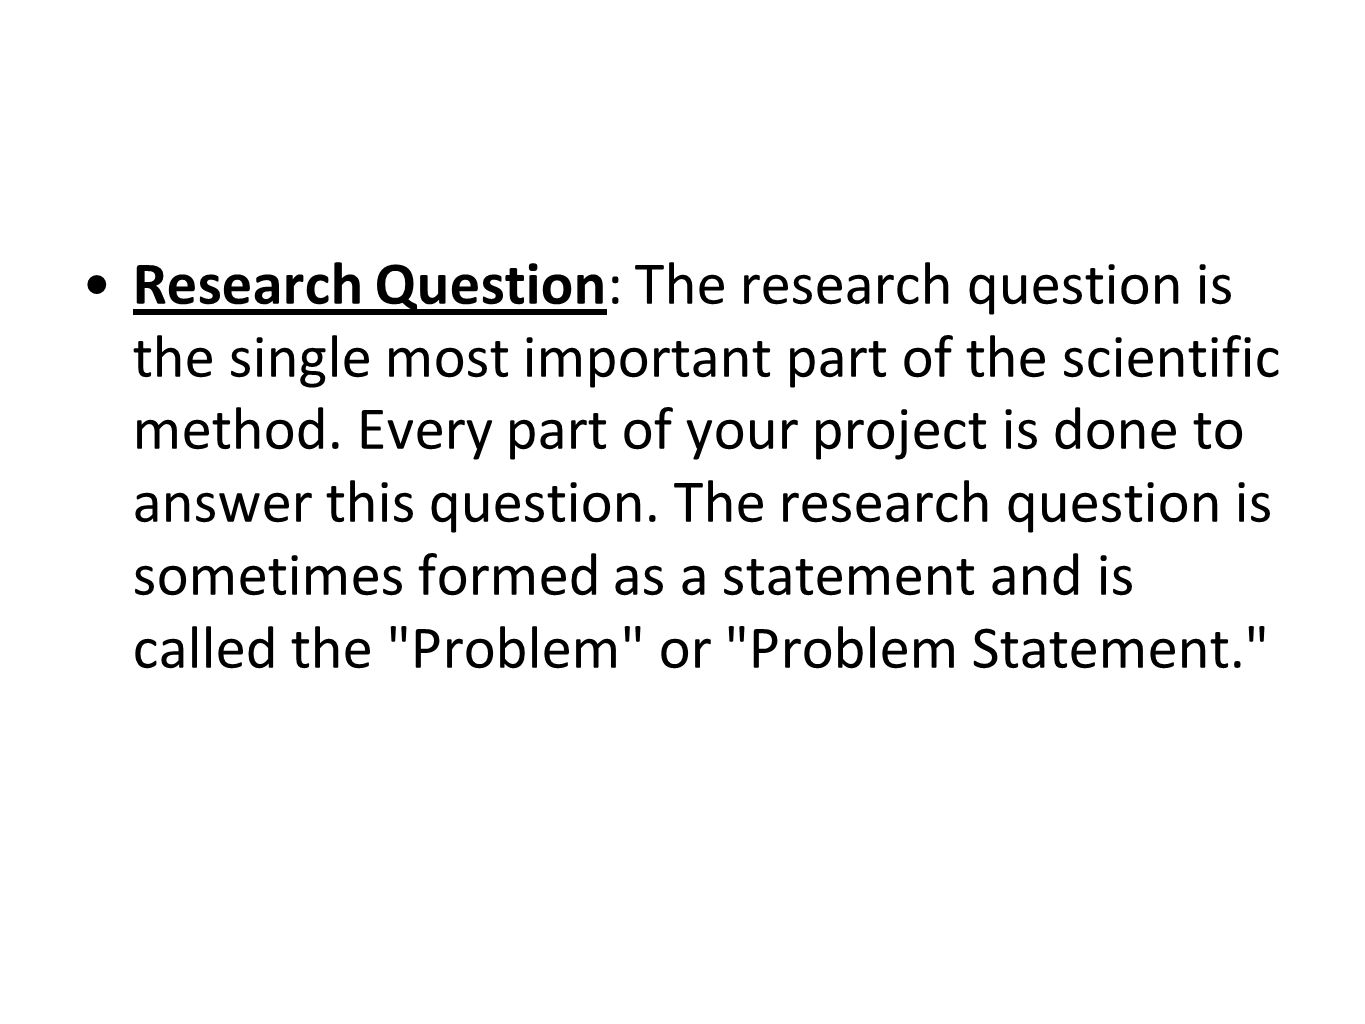 Research Question: The research question is the single most important part of the scientific method.